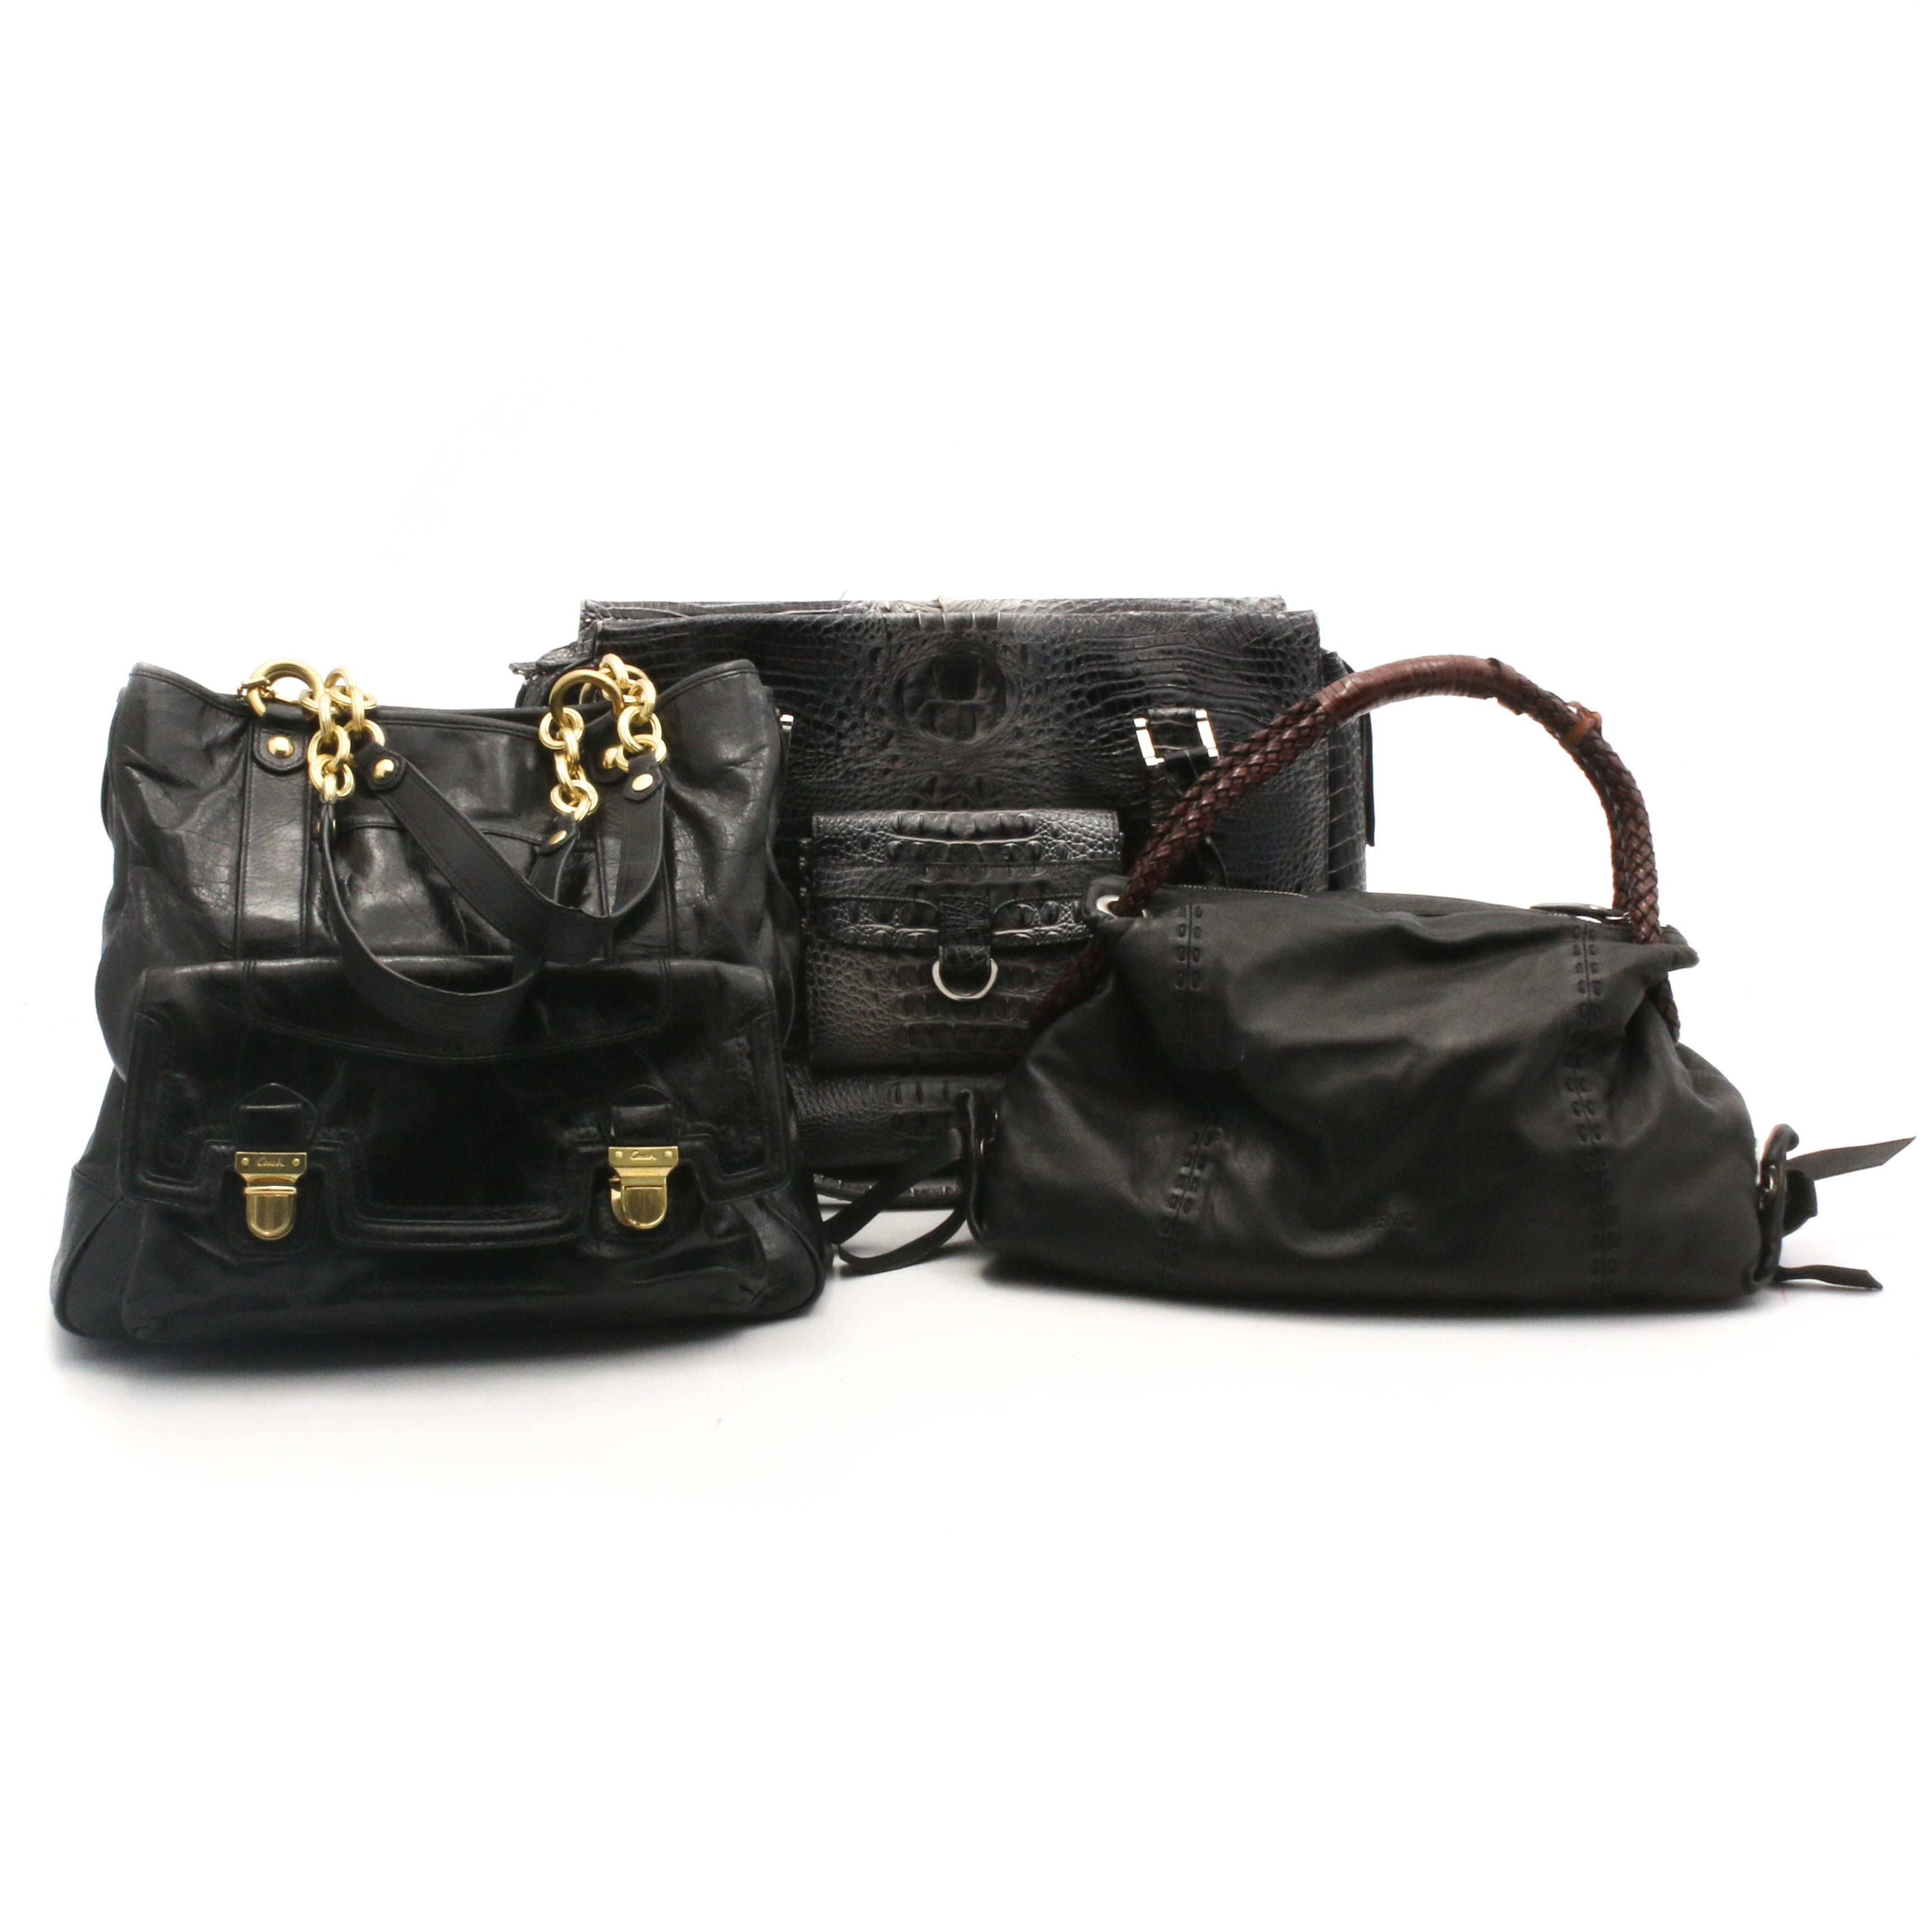 Coach, Desmo, and Charlie Lapson Leather Bags